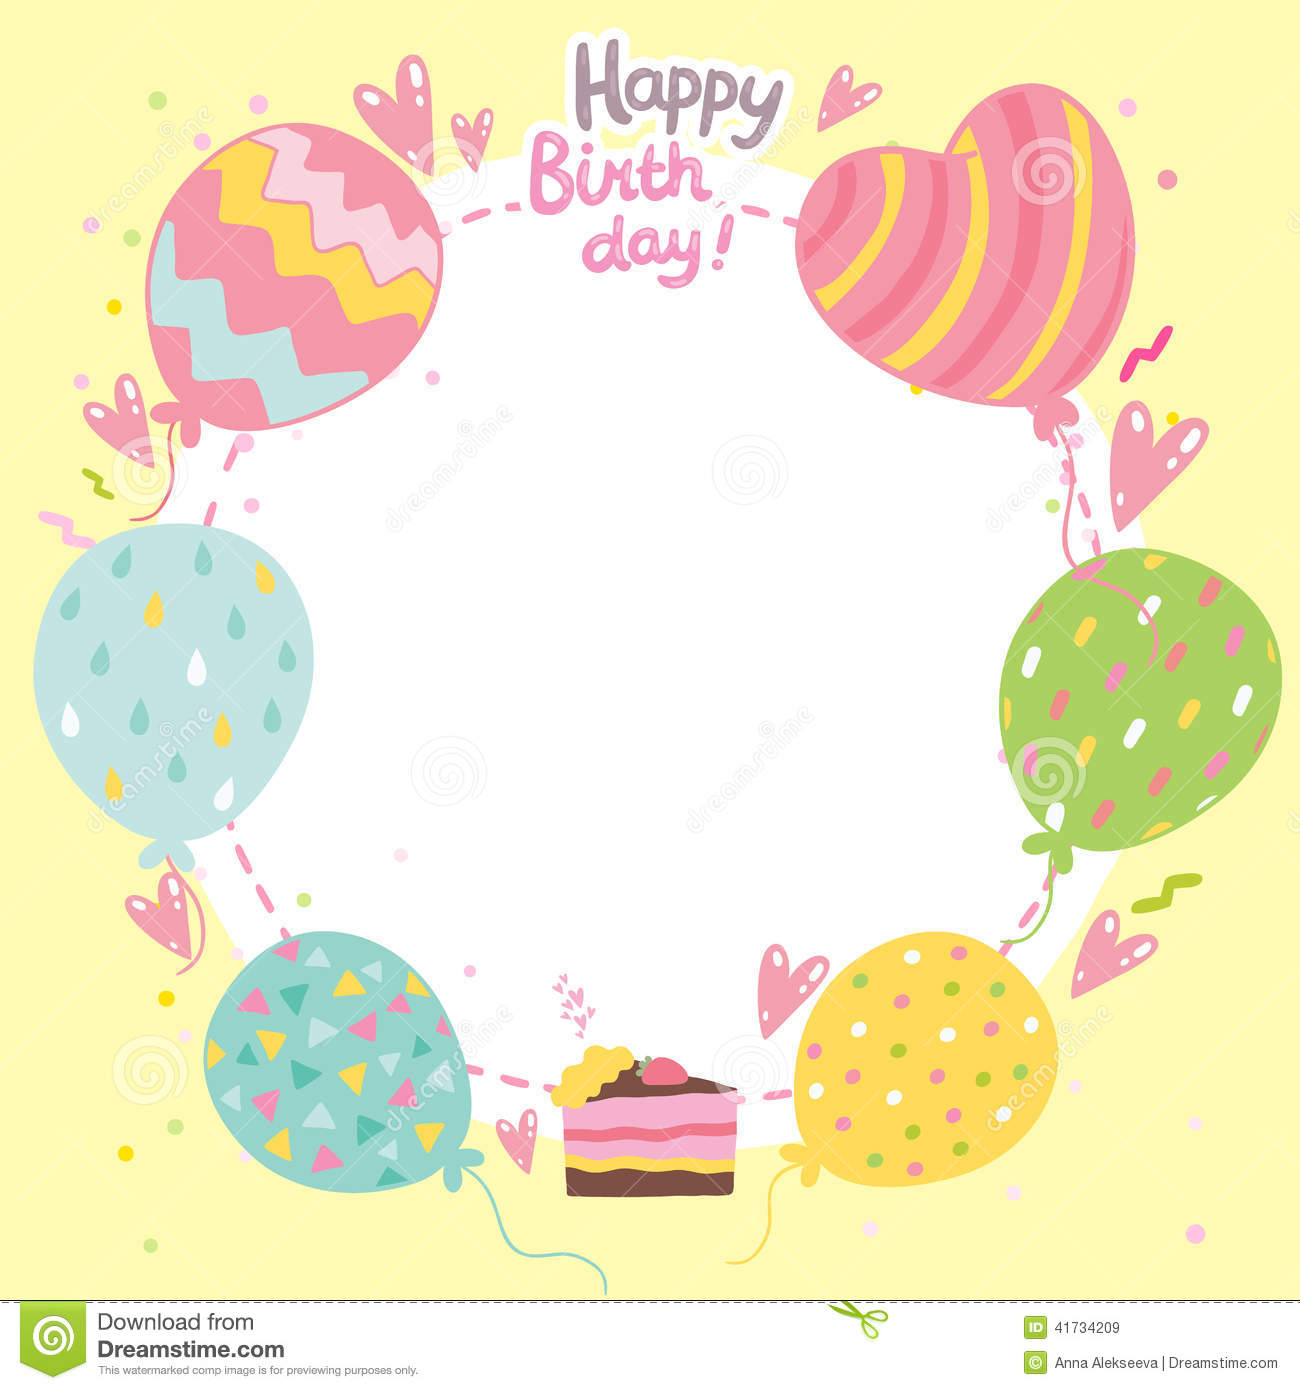 happy birthday card printable template ; happy-birthday-card-background-balloons-cake-vector-holiday-party-template-41734209